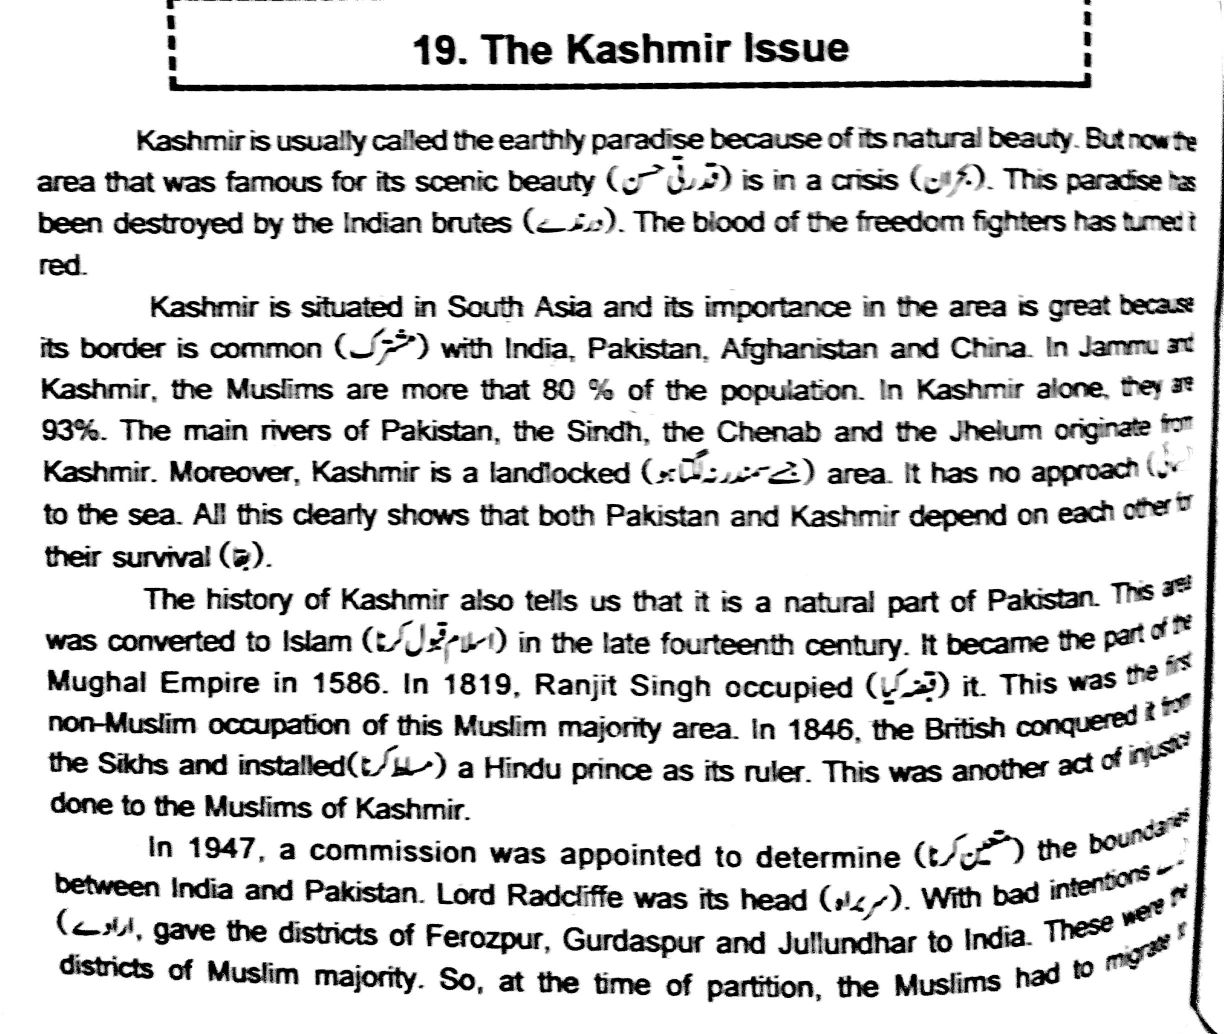 essay for grandmother kashmir issue essay pak education info the  kashmir issue essay pak education info the kashmir problem essay the kashmir issue essay in english